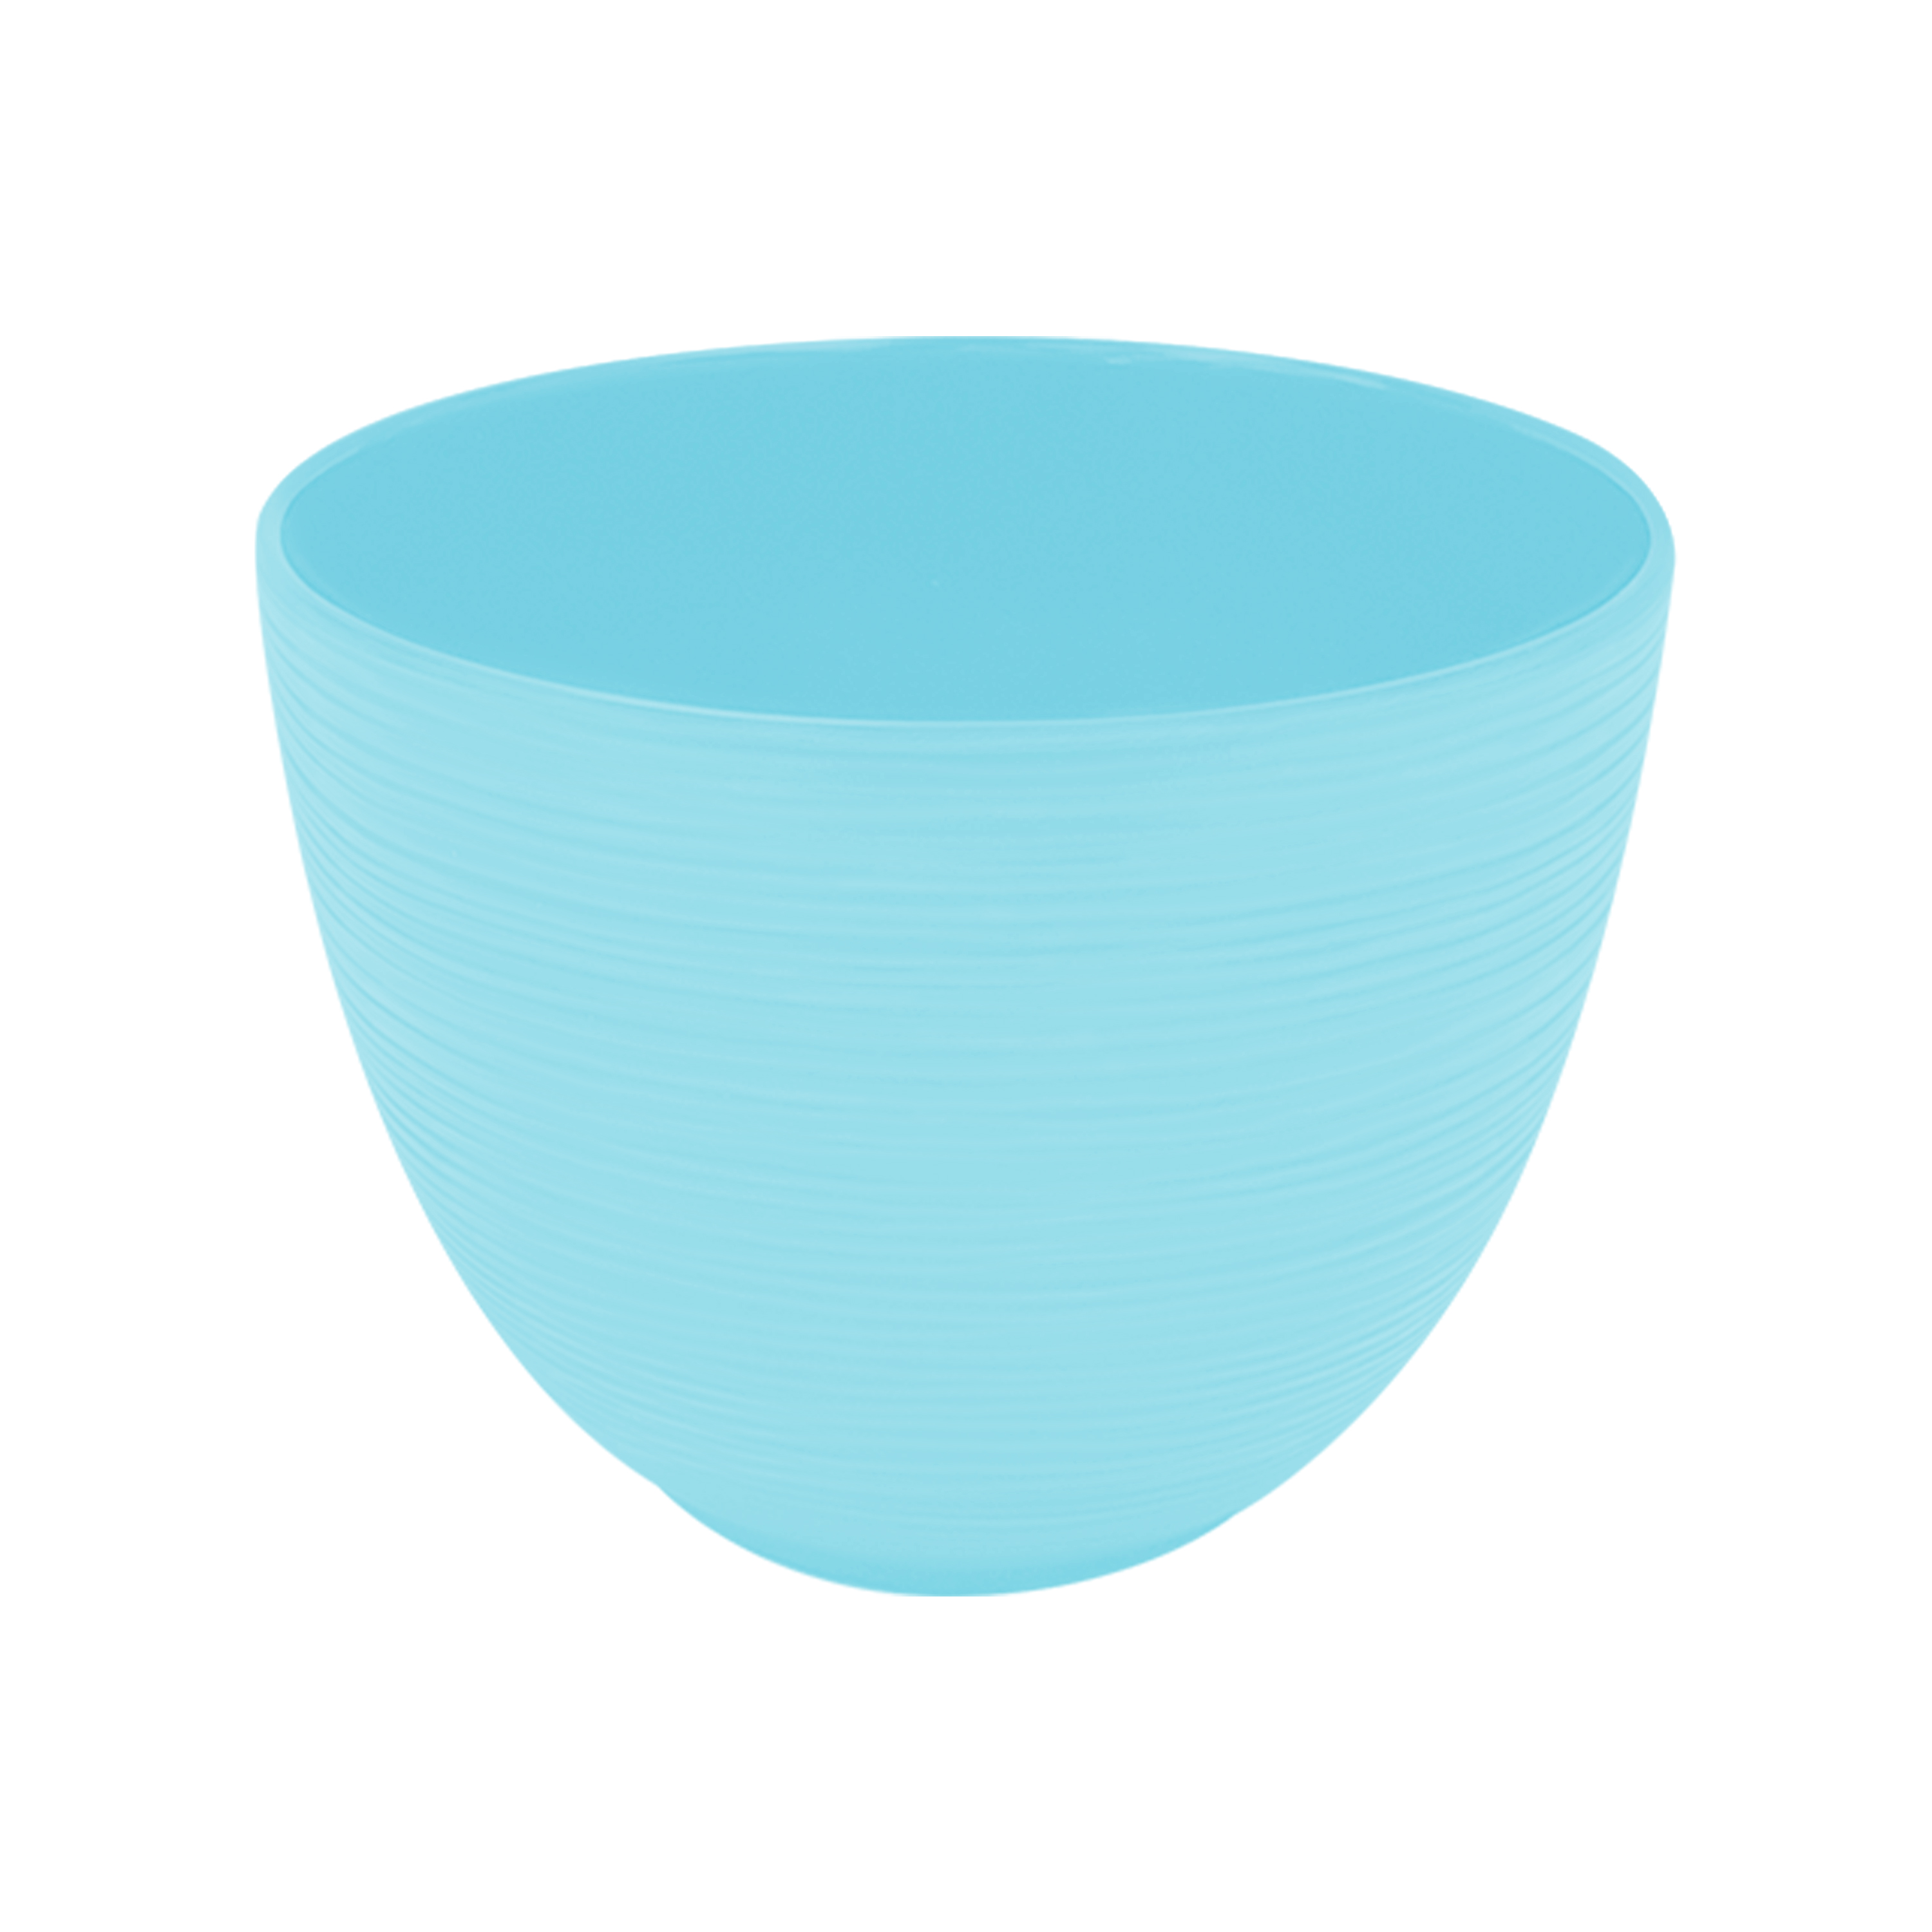 Zak Style Serving and Dip Bowls, Assorted Colors, 4-piece set slideshow image 8